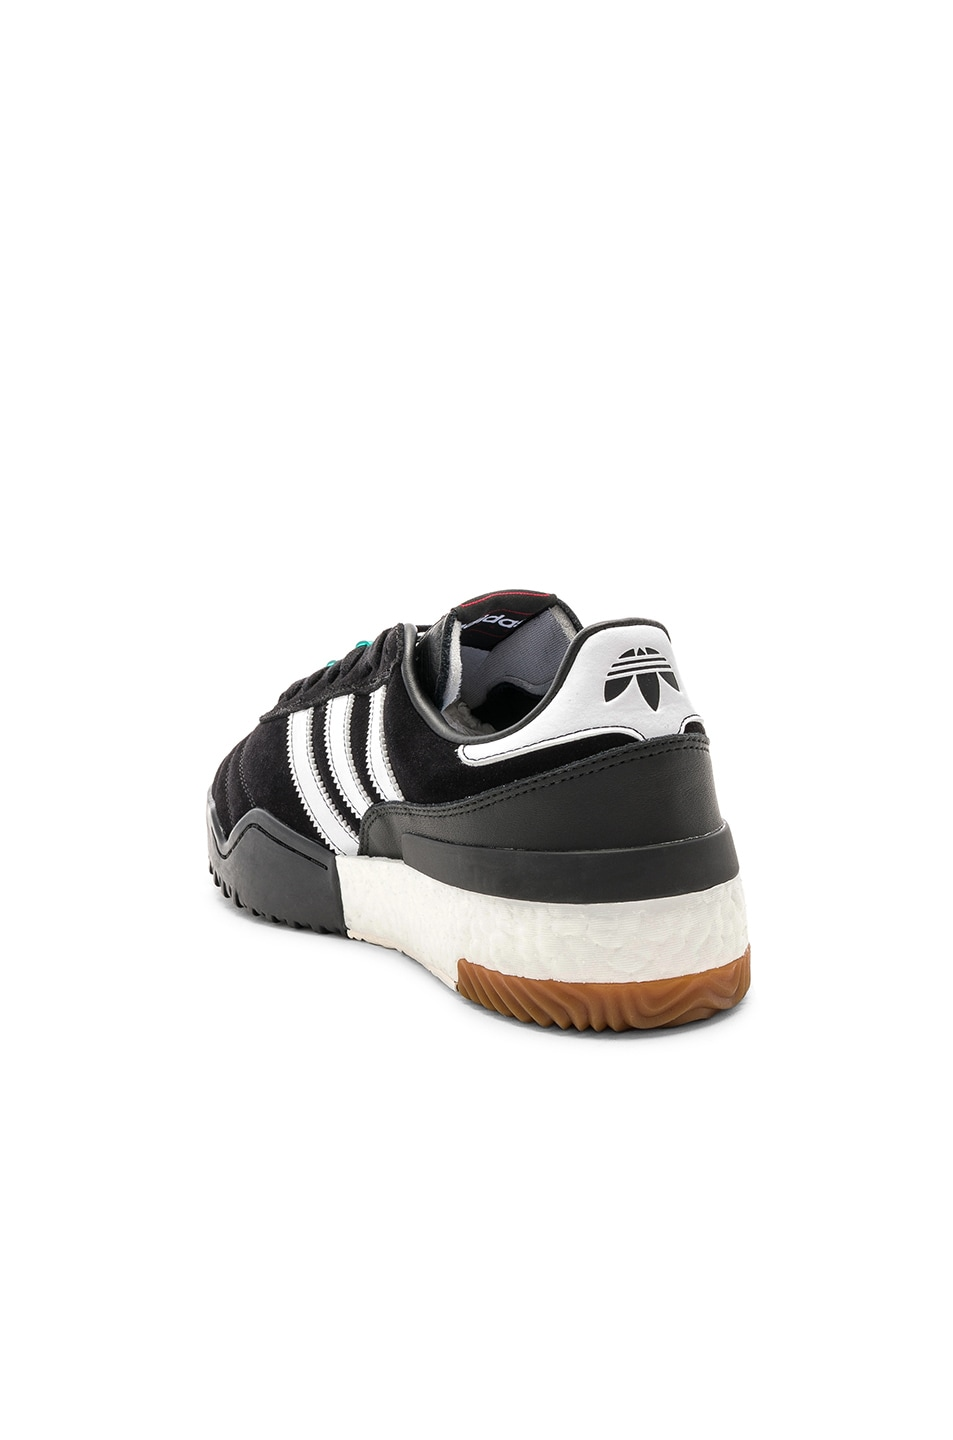 brand new 7e8f7 75274 Image 3 of adidas by Alexander Wang Basketball Soccer Sneakers in Core Black   White